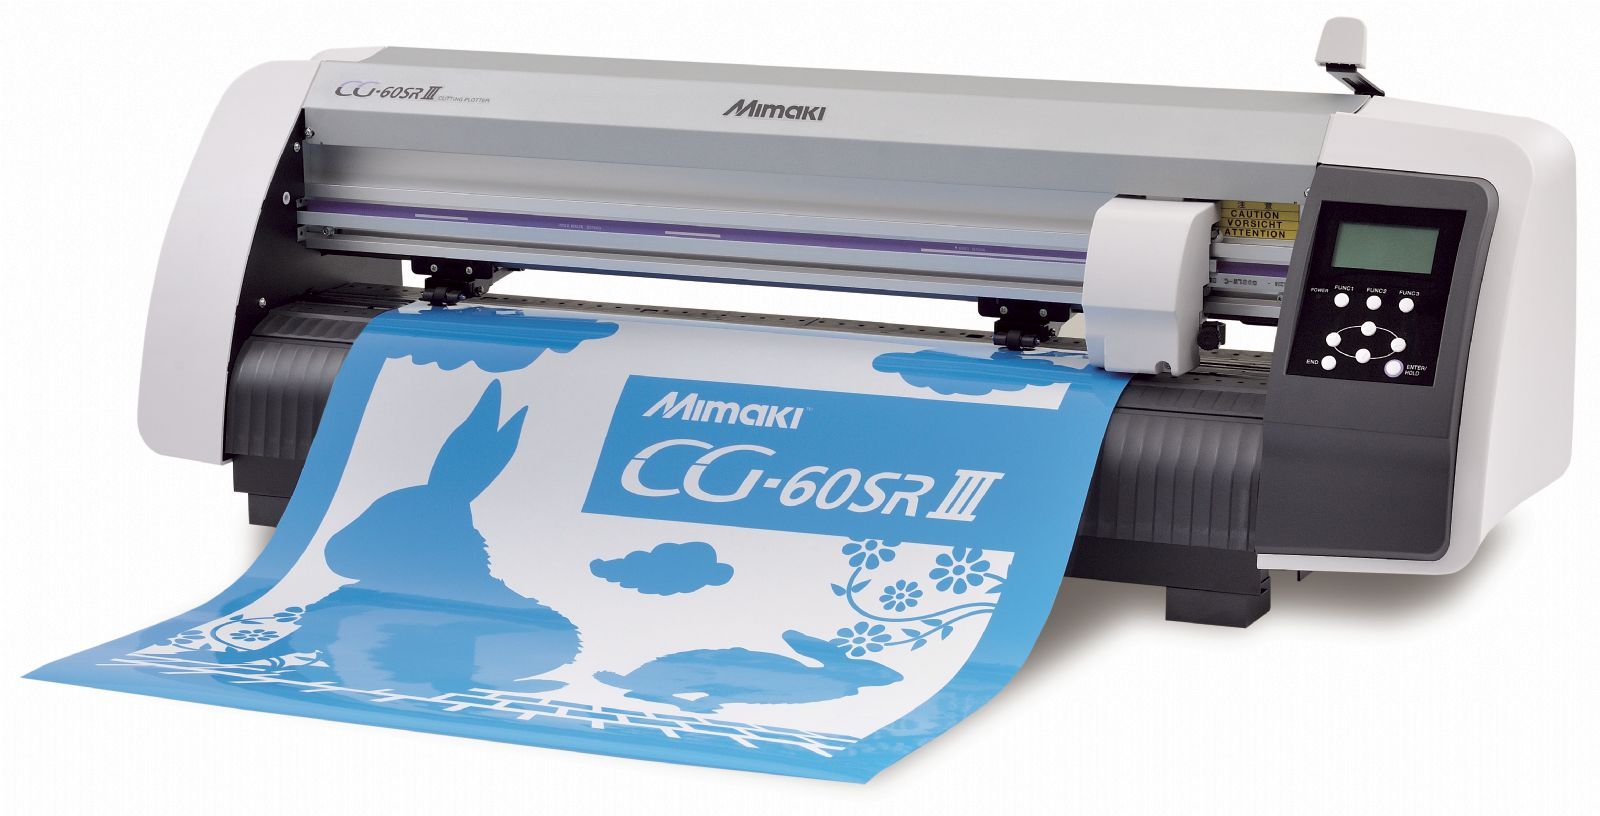 Decal Mimaki CG 60 SRIII